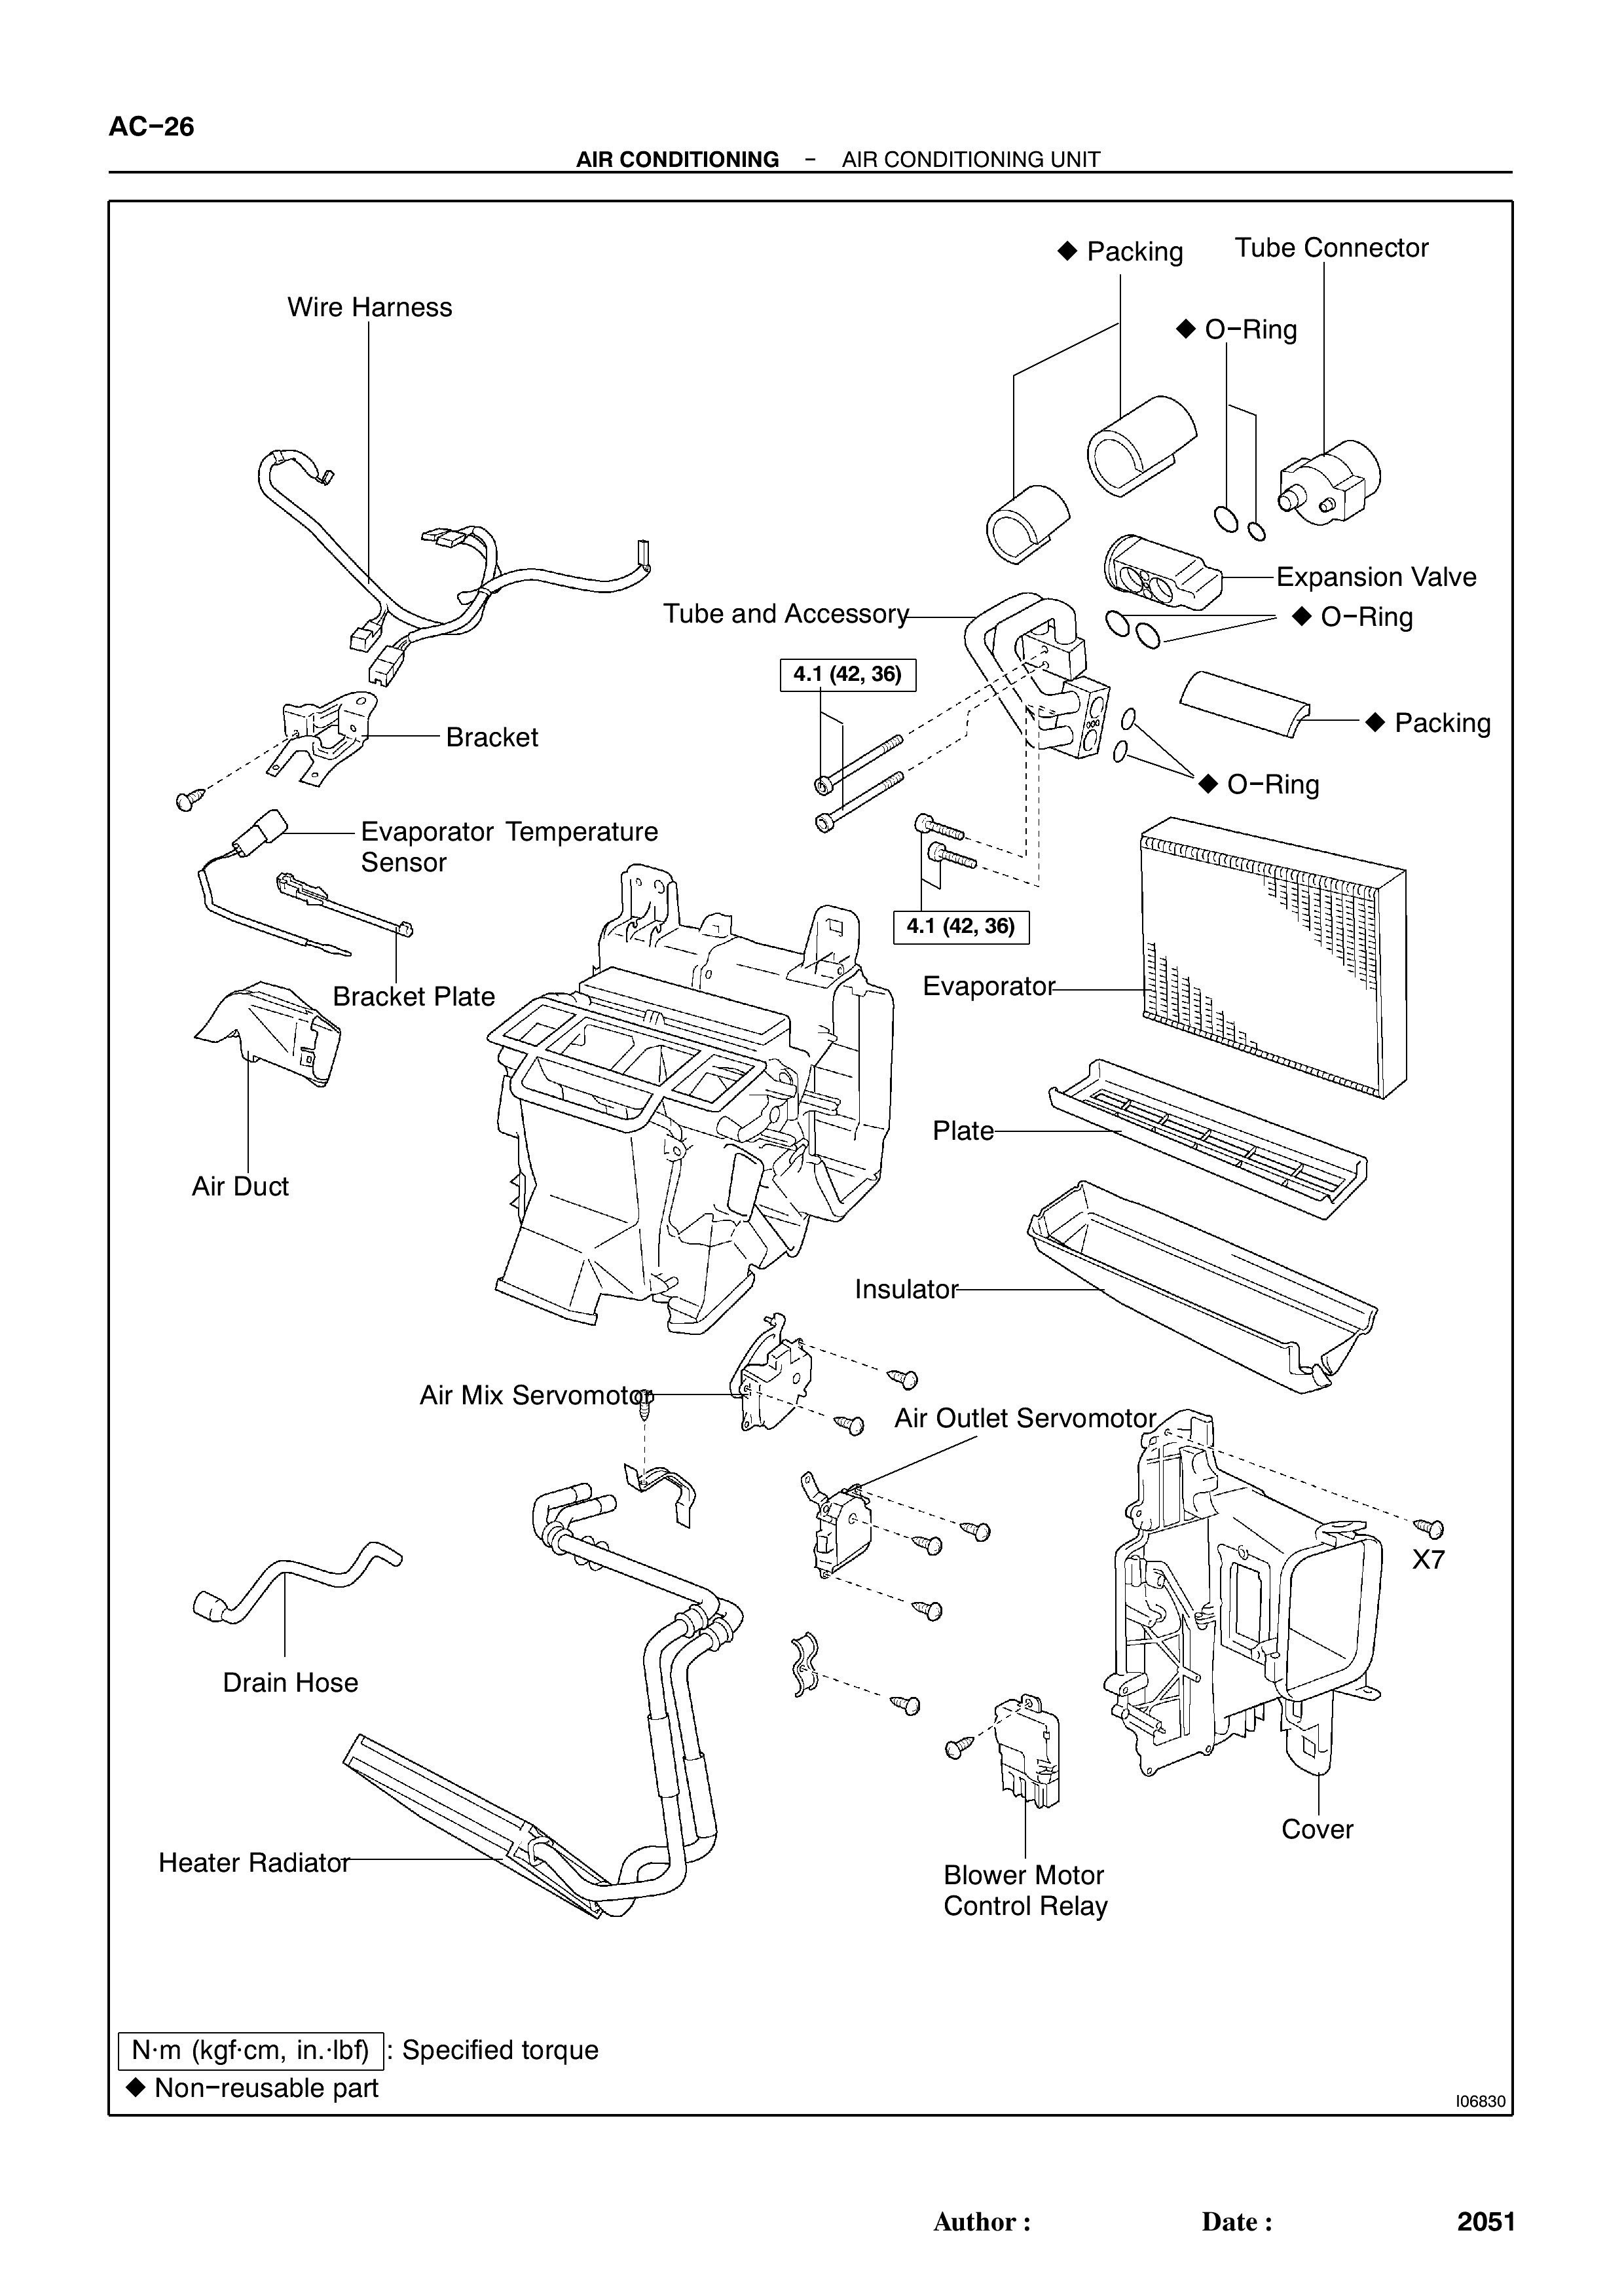 [DIAGRAM] Hunter 85112 04 Wiring Diagram FULL Version HD